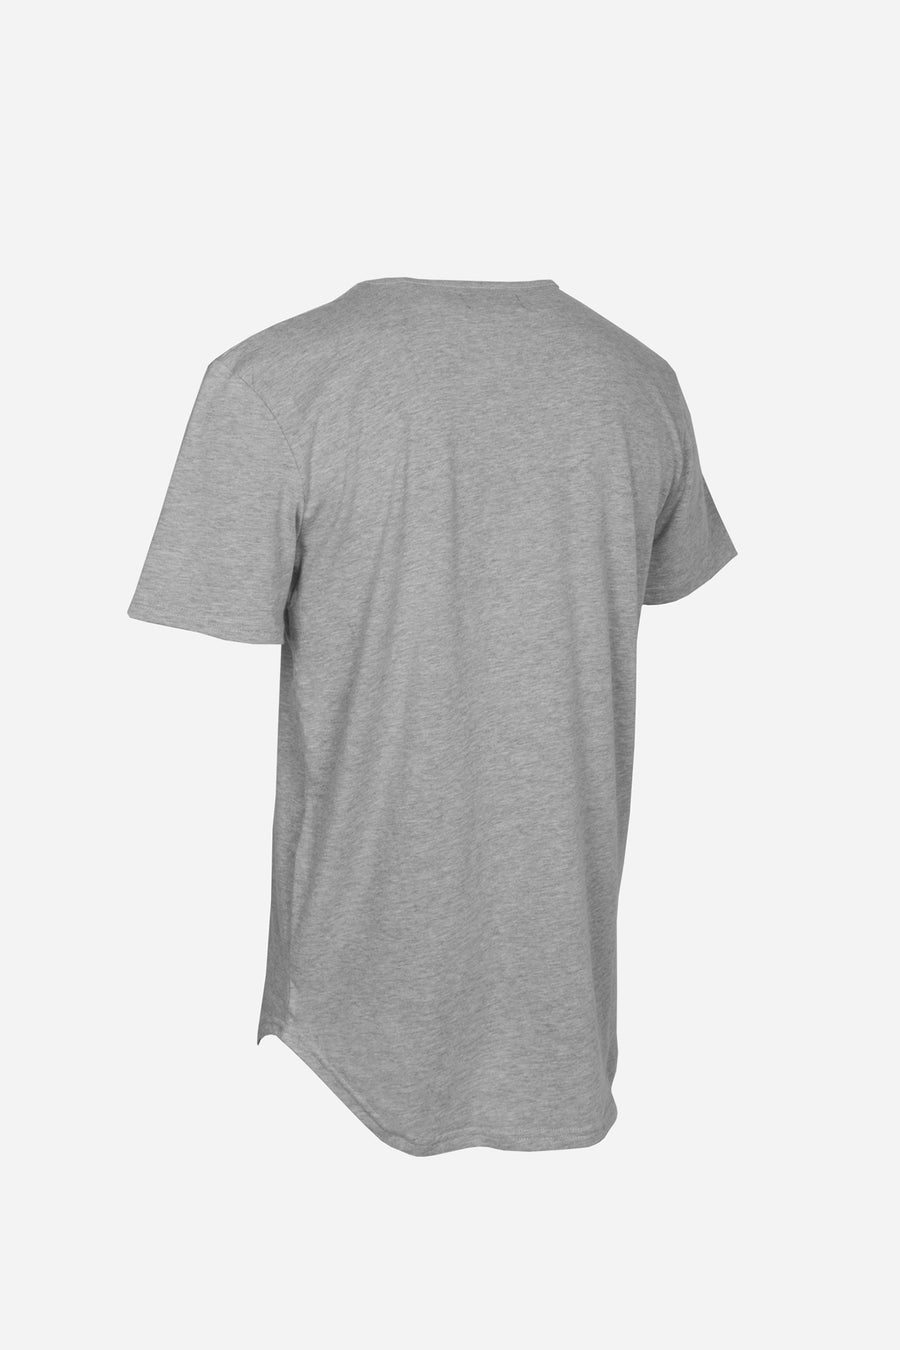 Barebones by GFC - Scoop Tee - Grey